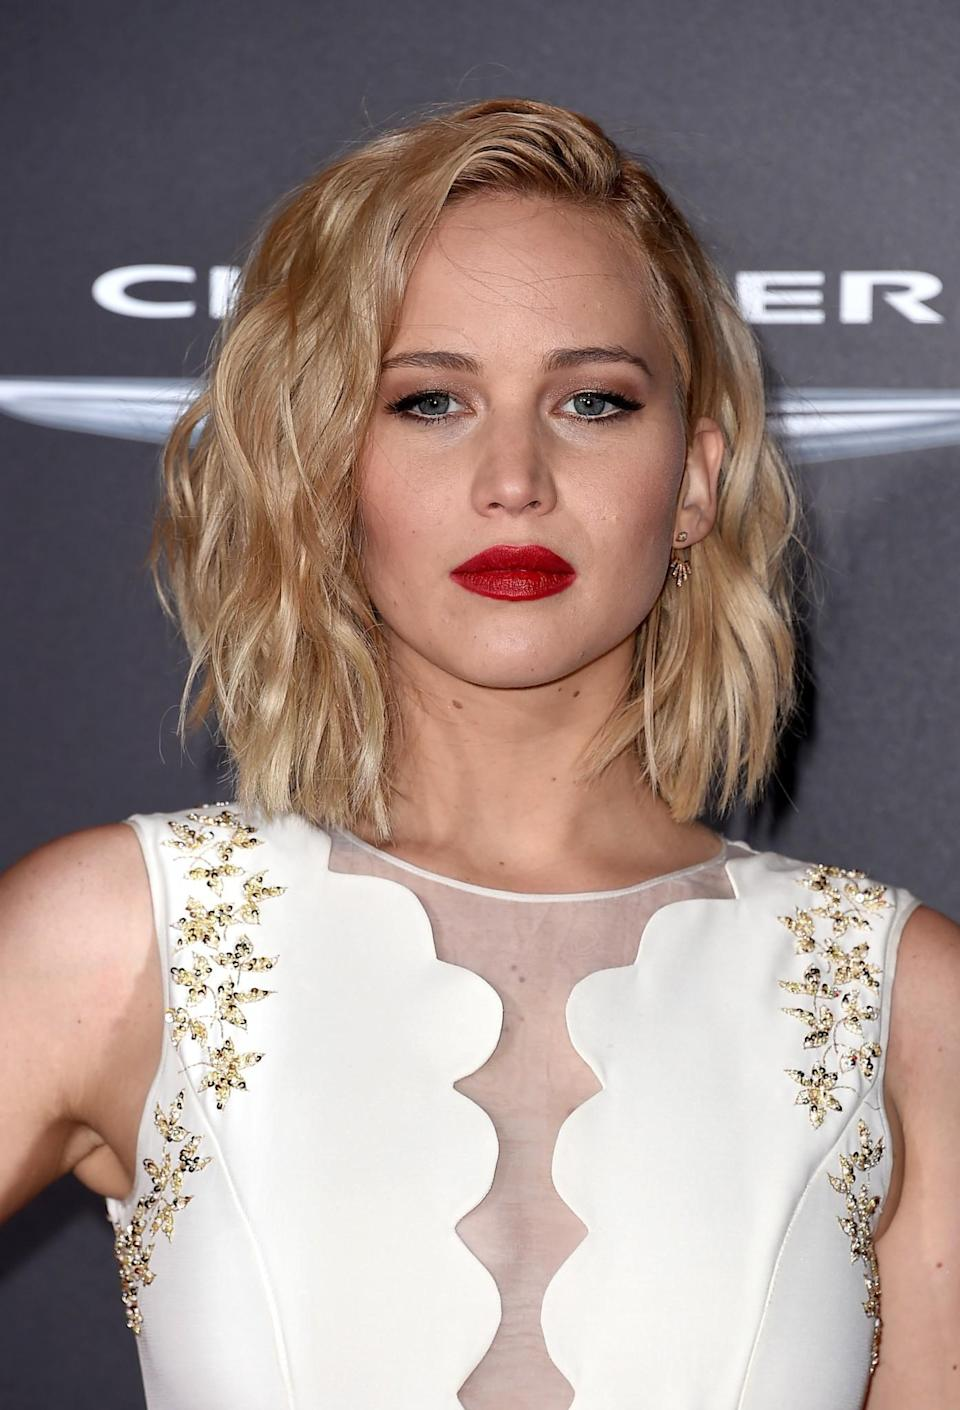 <p>The actress was the splitting image of 'Mad Men' star January Jones, thanks to bold red lipstick and tousled blonde cropped locks at a 'The Hunger Games: Mockingjay Part 2' premiere. [Photo: Getty] </p>